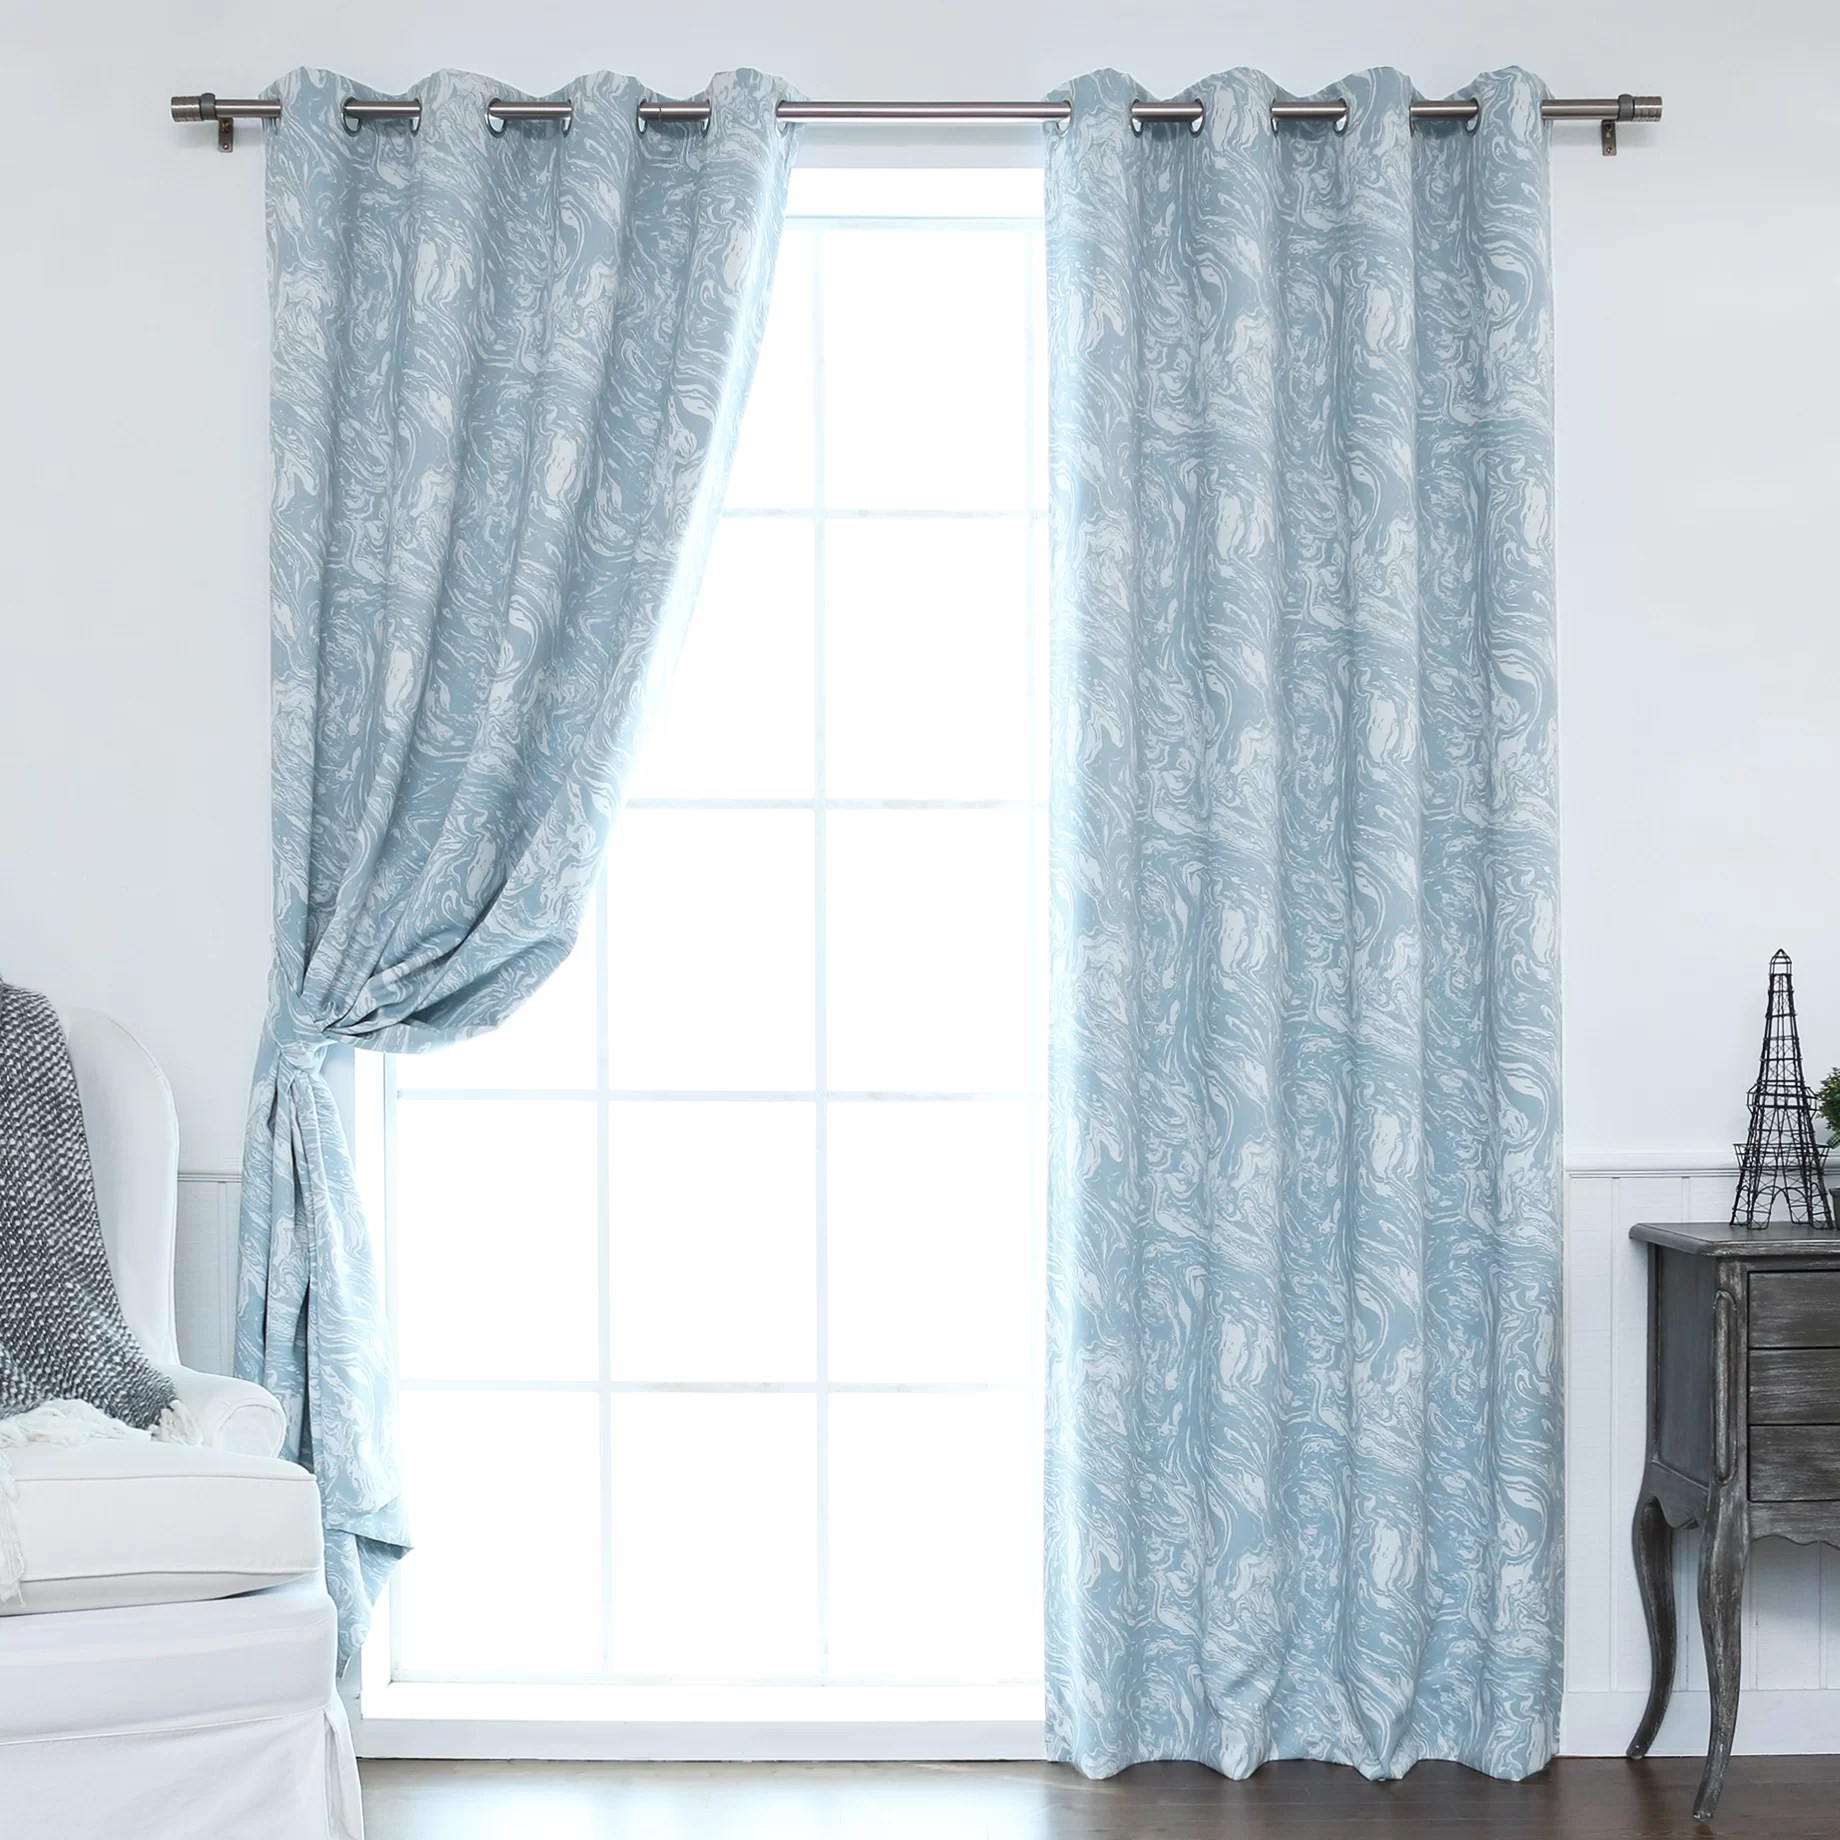 Best Home Fashion Inc Marble Print Room Darkening Blackout Thermal Curtain Panels Amp Reviews